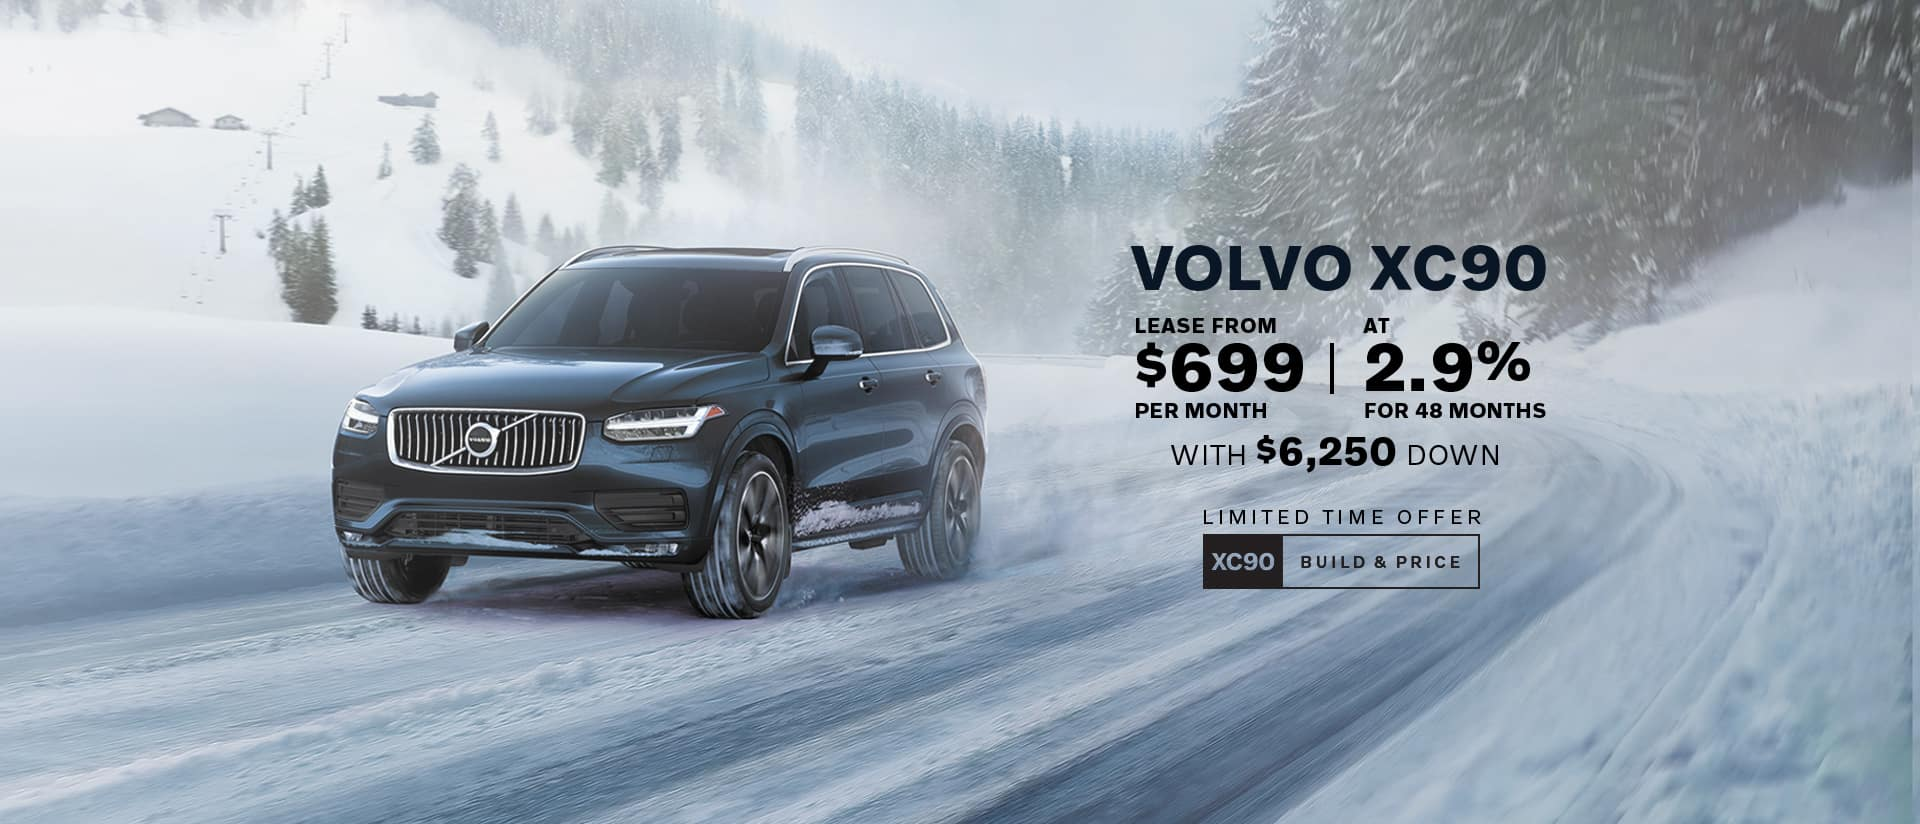 black xc90 driving on a snowy road